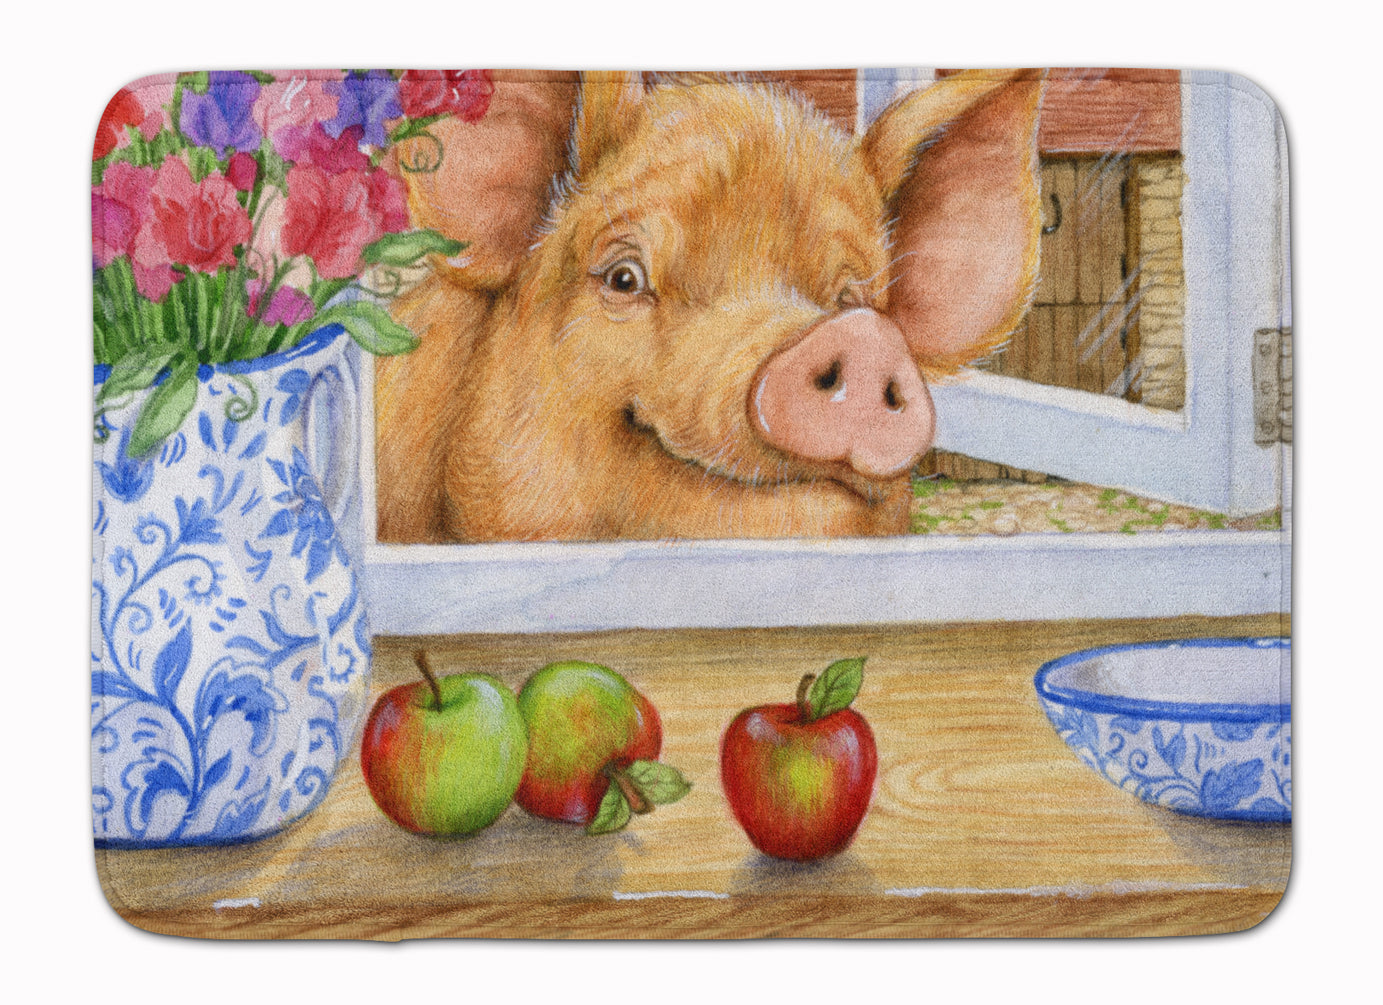 Pig trying to reach the Apple in the Window Machine Washable Memory Foam Mat CDCO0352RUG by Caroline's Treasures